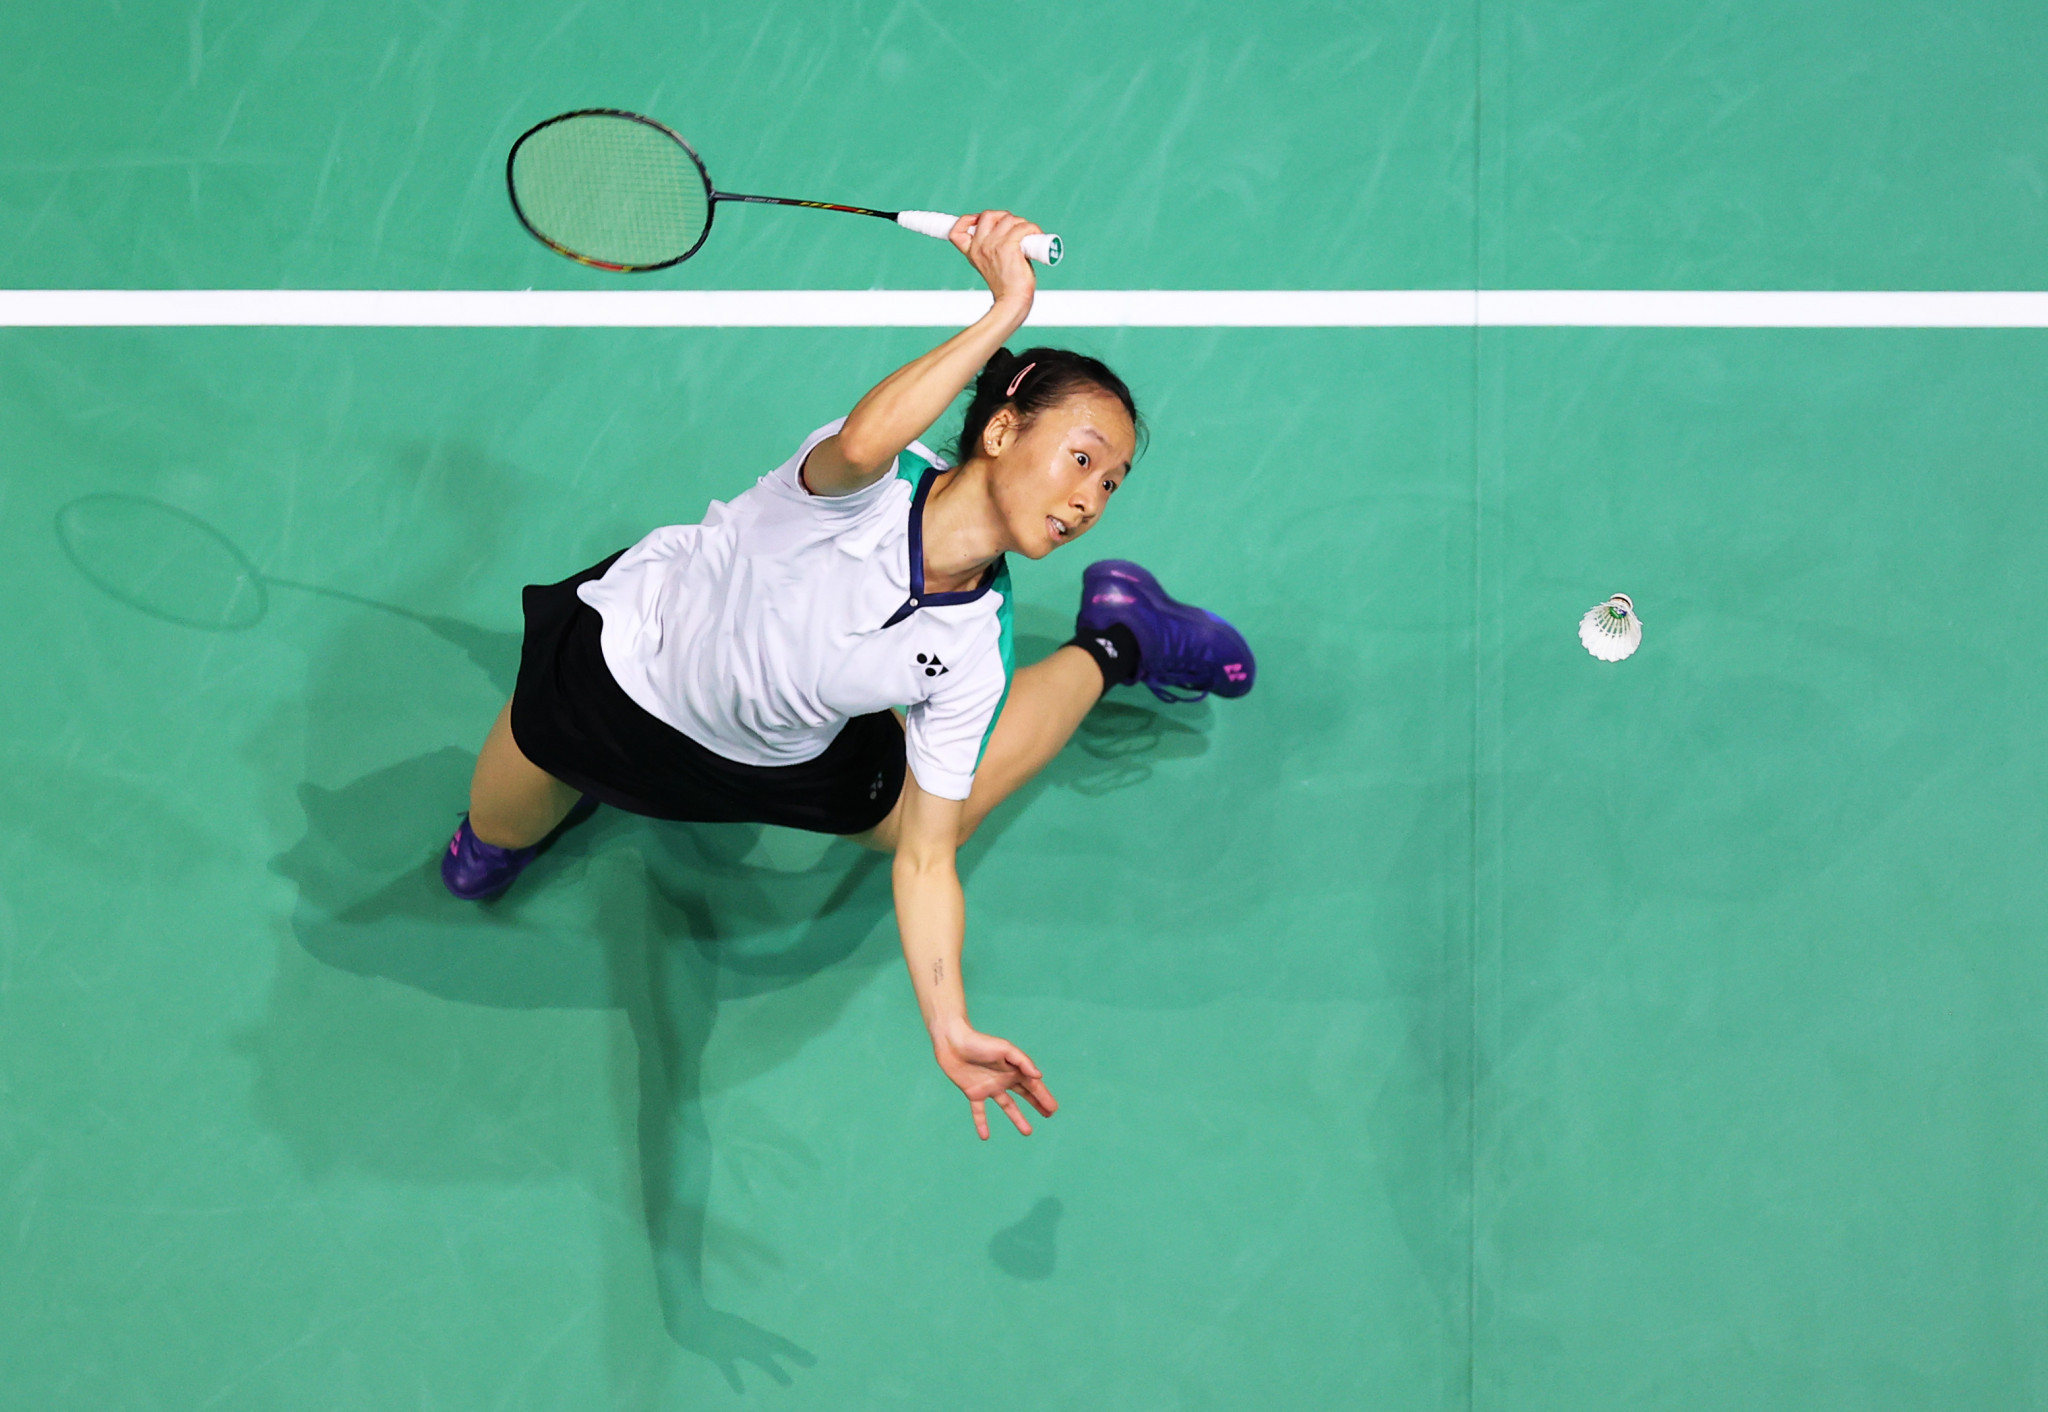 Second seed Iris Wang suffered a shock semi-final defeat to 17-year-old Rachel Chan ©Getty Images